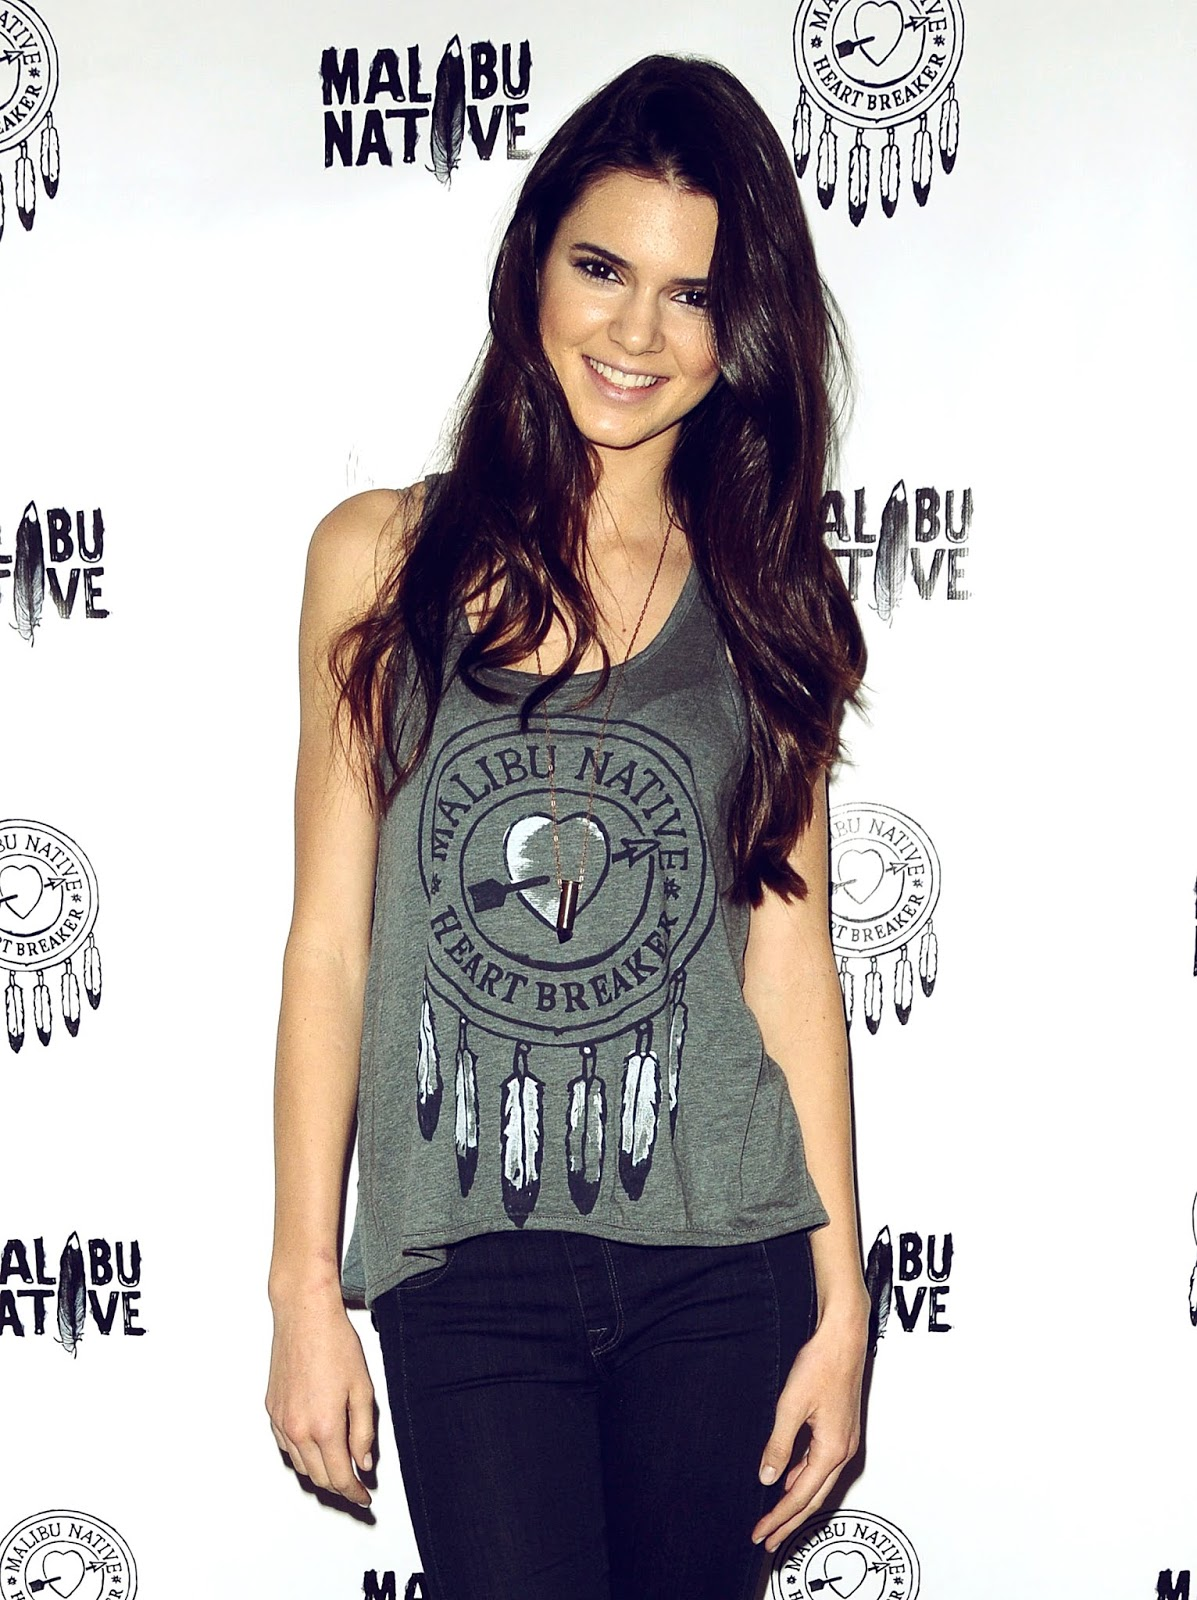 09 - Celebrates Launch Of Malibu Native Surf Fashion Brand At Pac Sun in Los Angeles in February 5, 2011